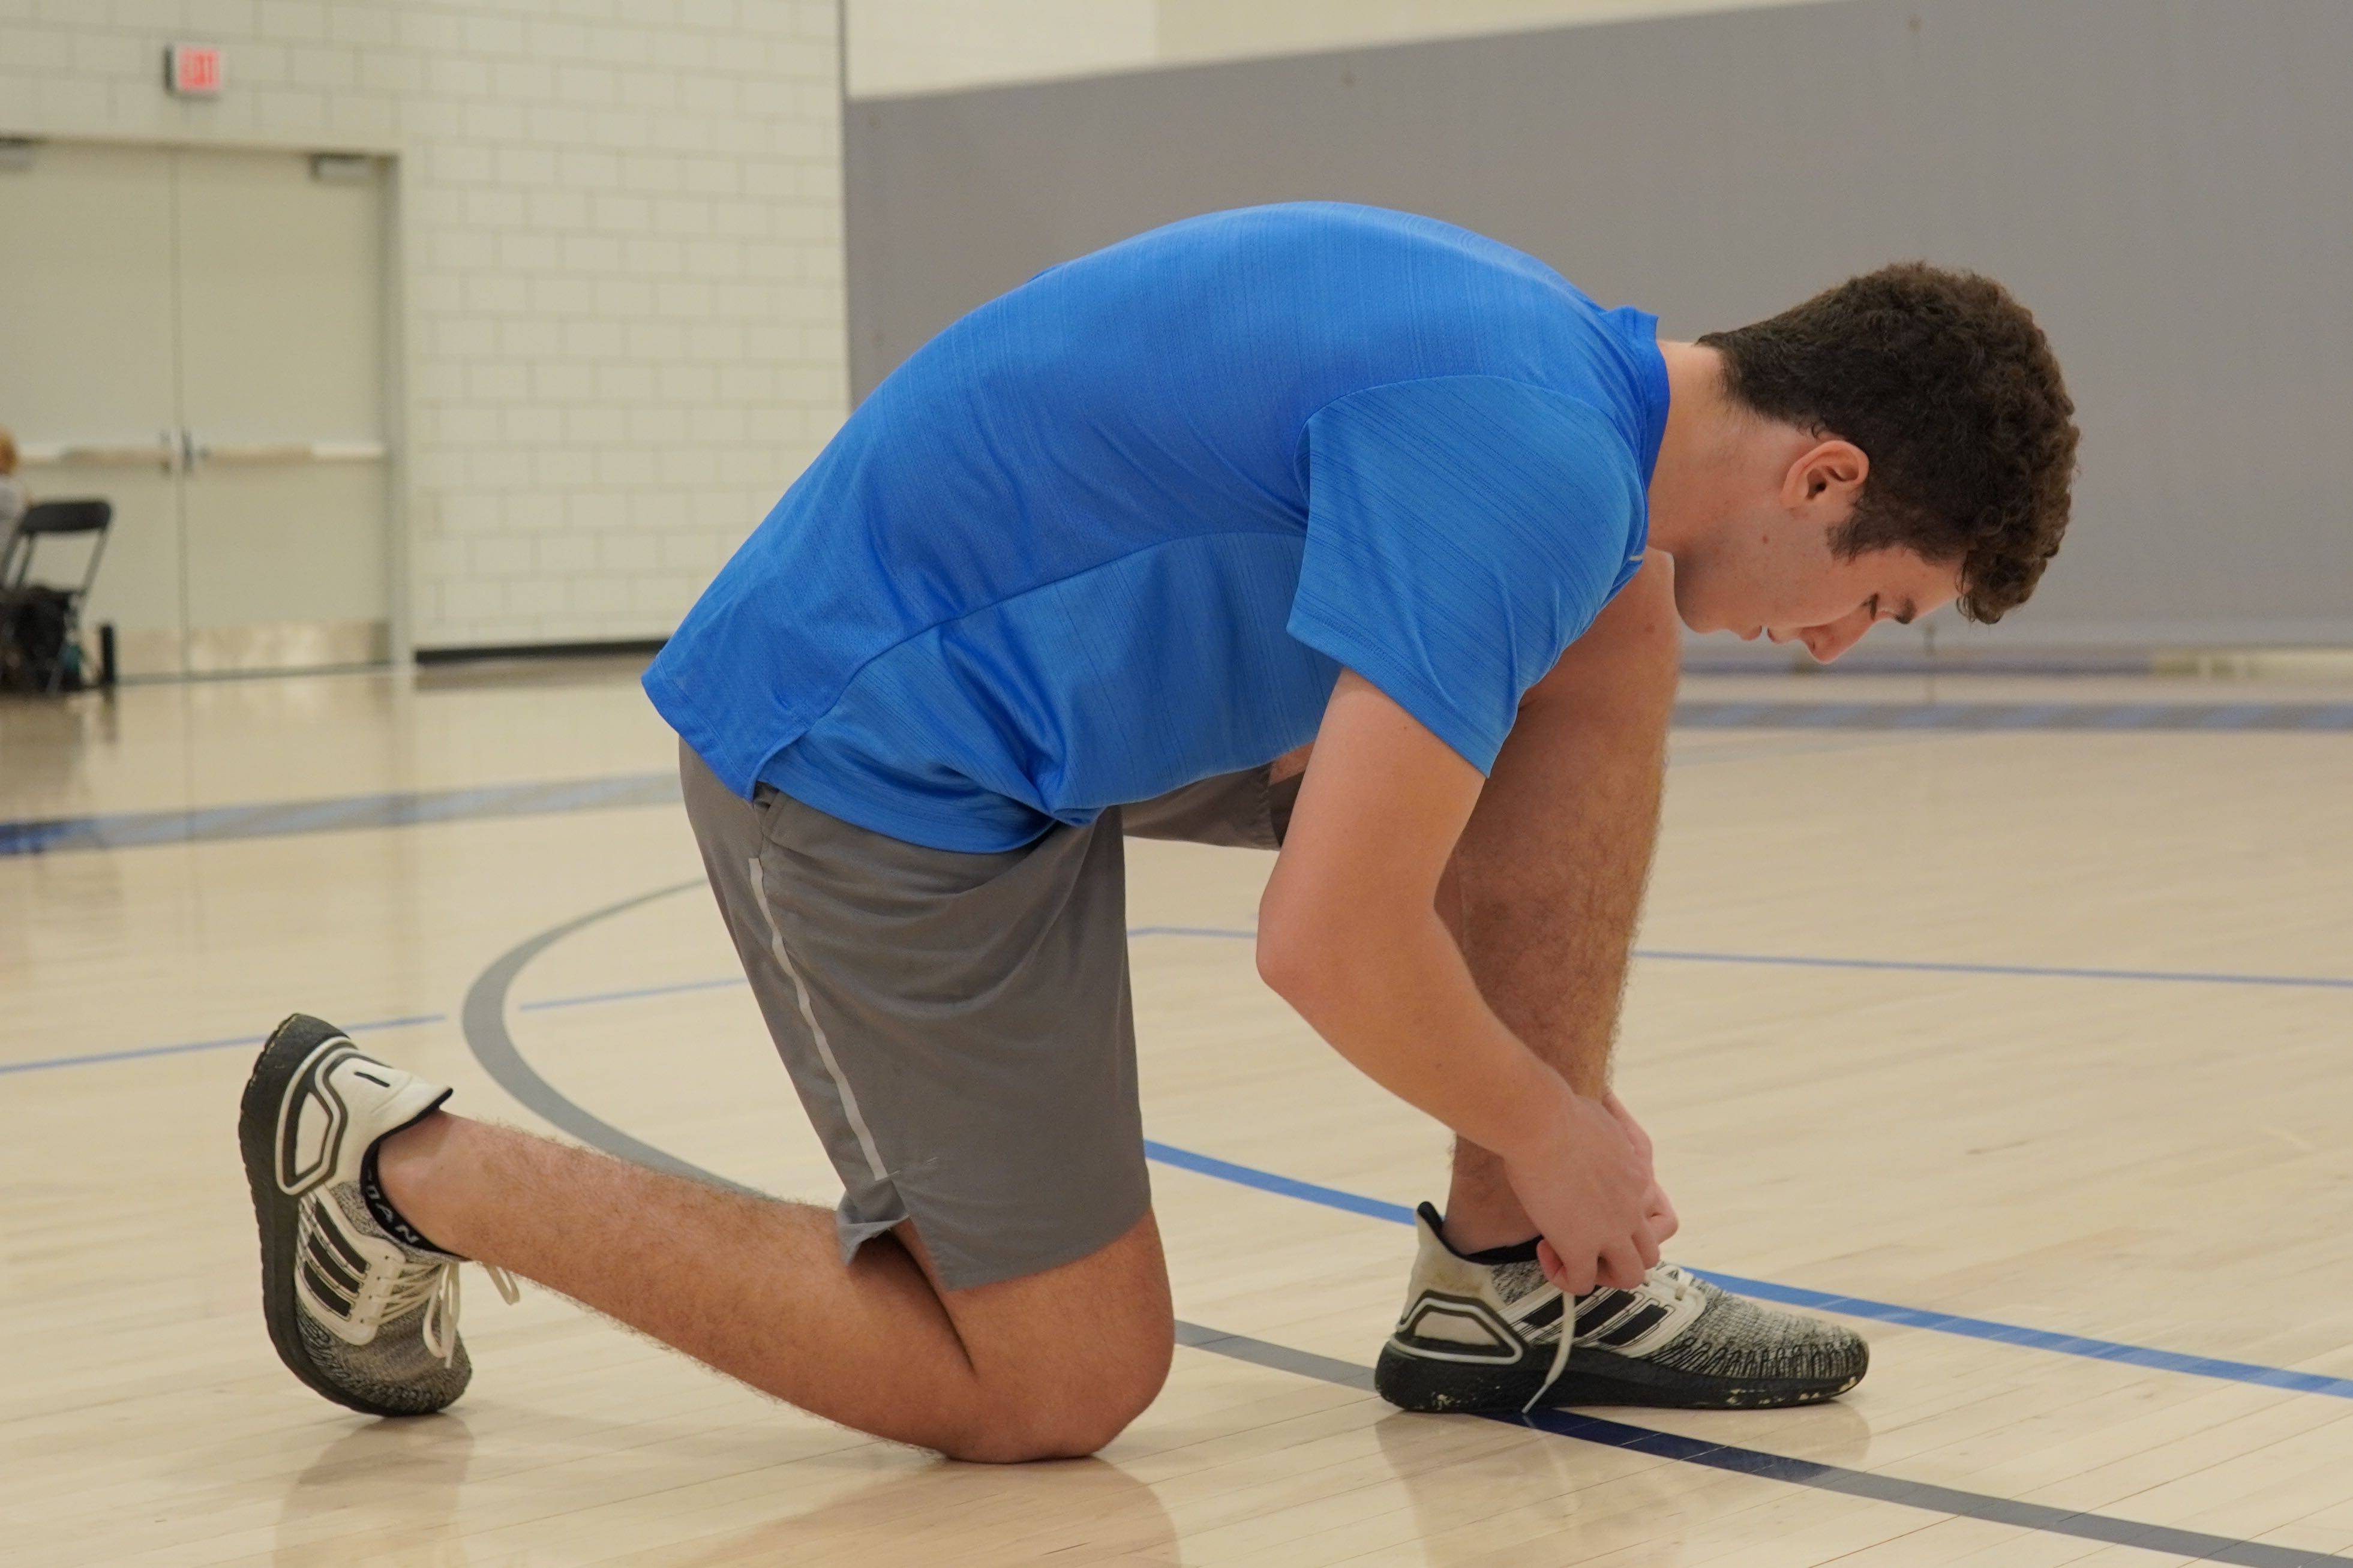 A student kneels to tie their shoes on the court.